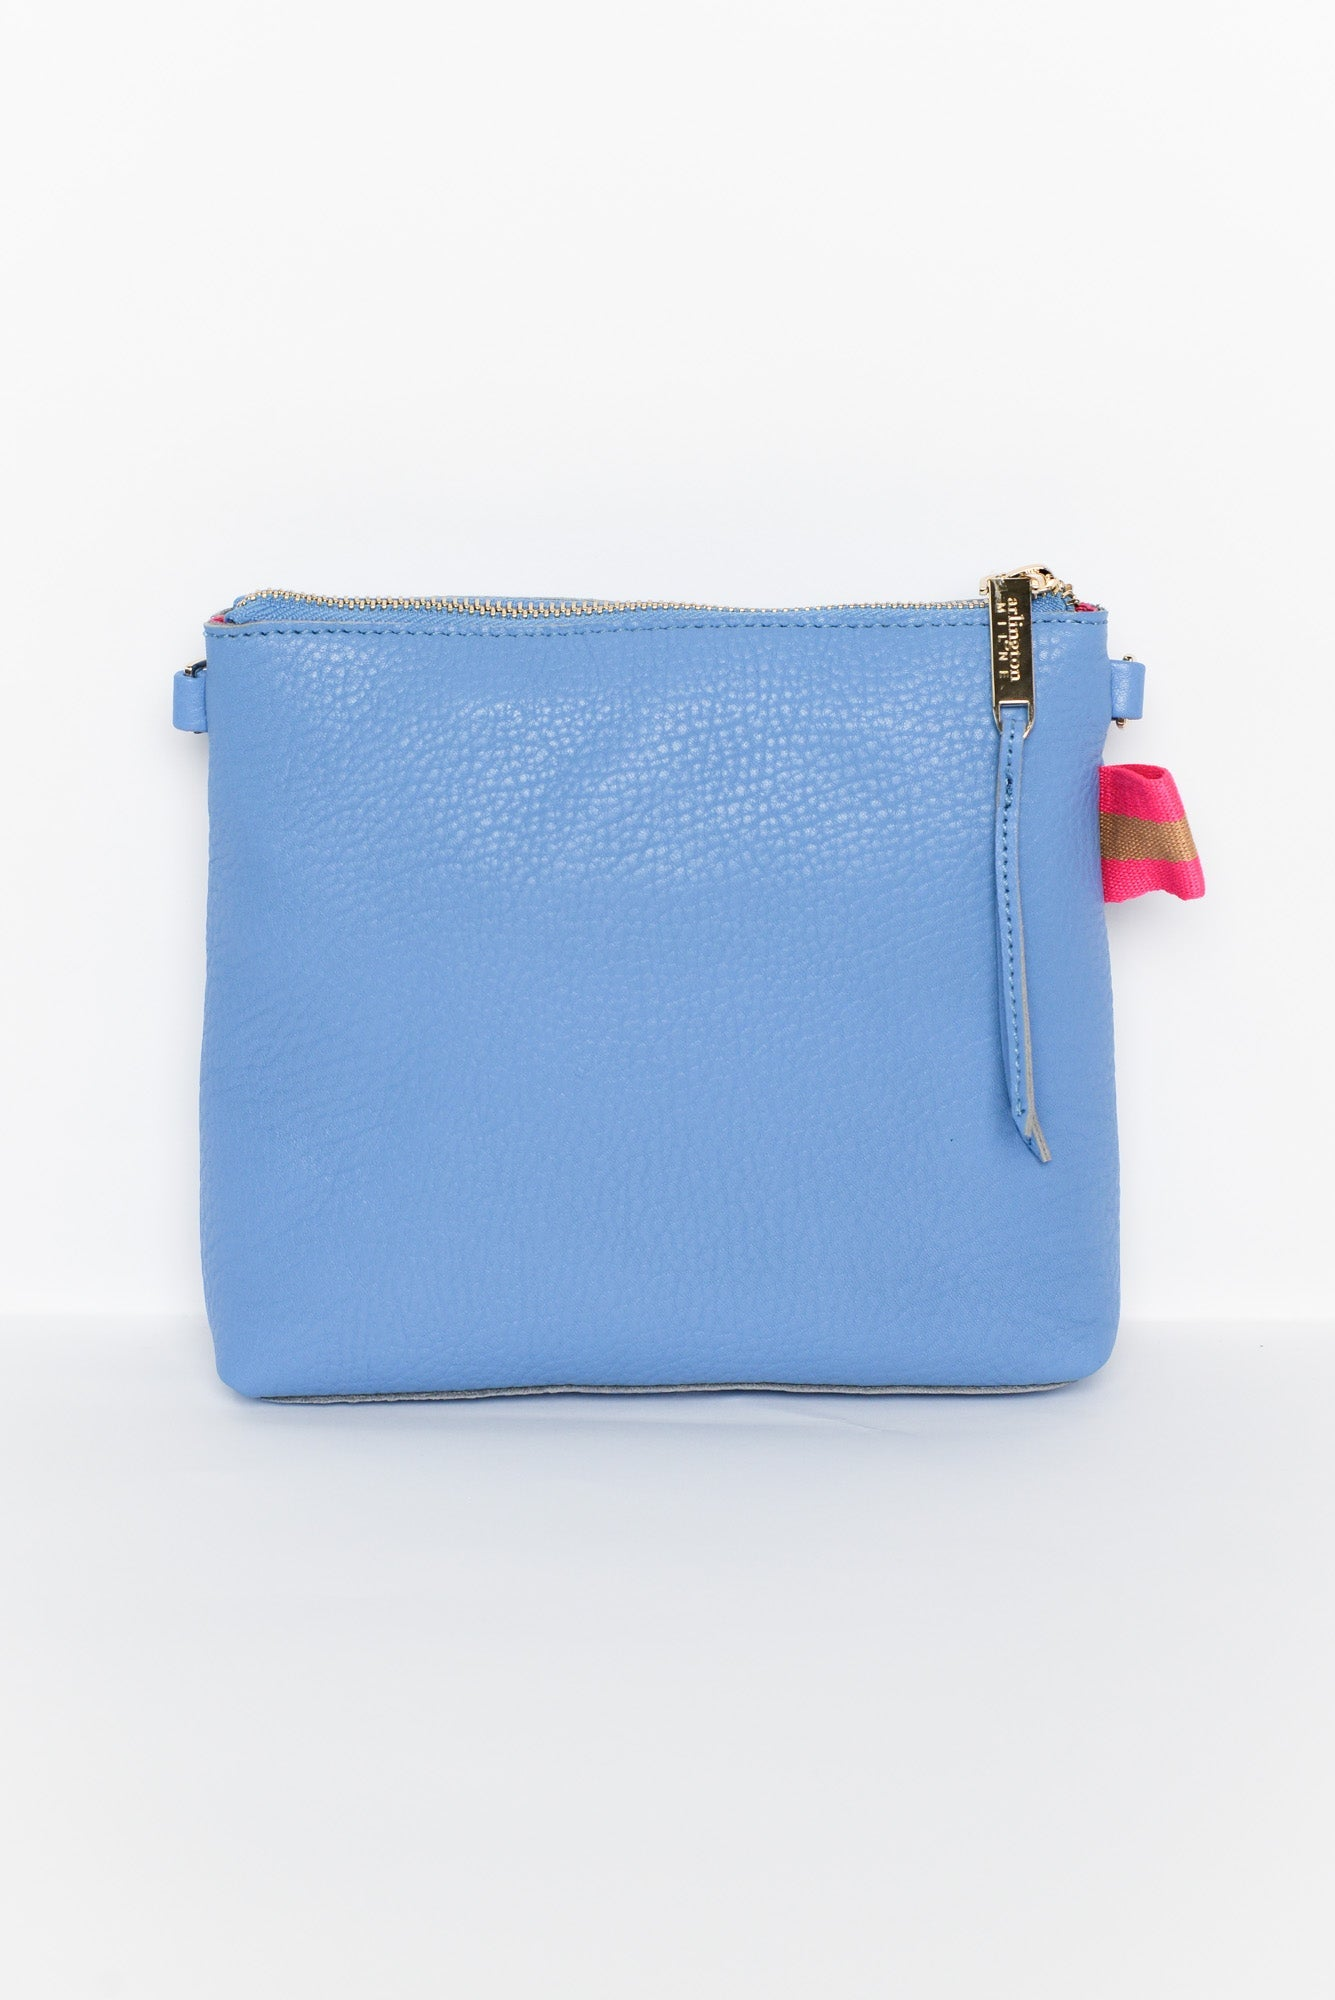 Alexis Light Blue Leather Crossbody Bag